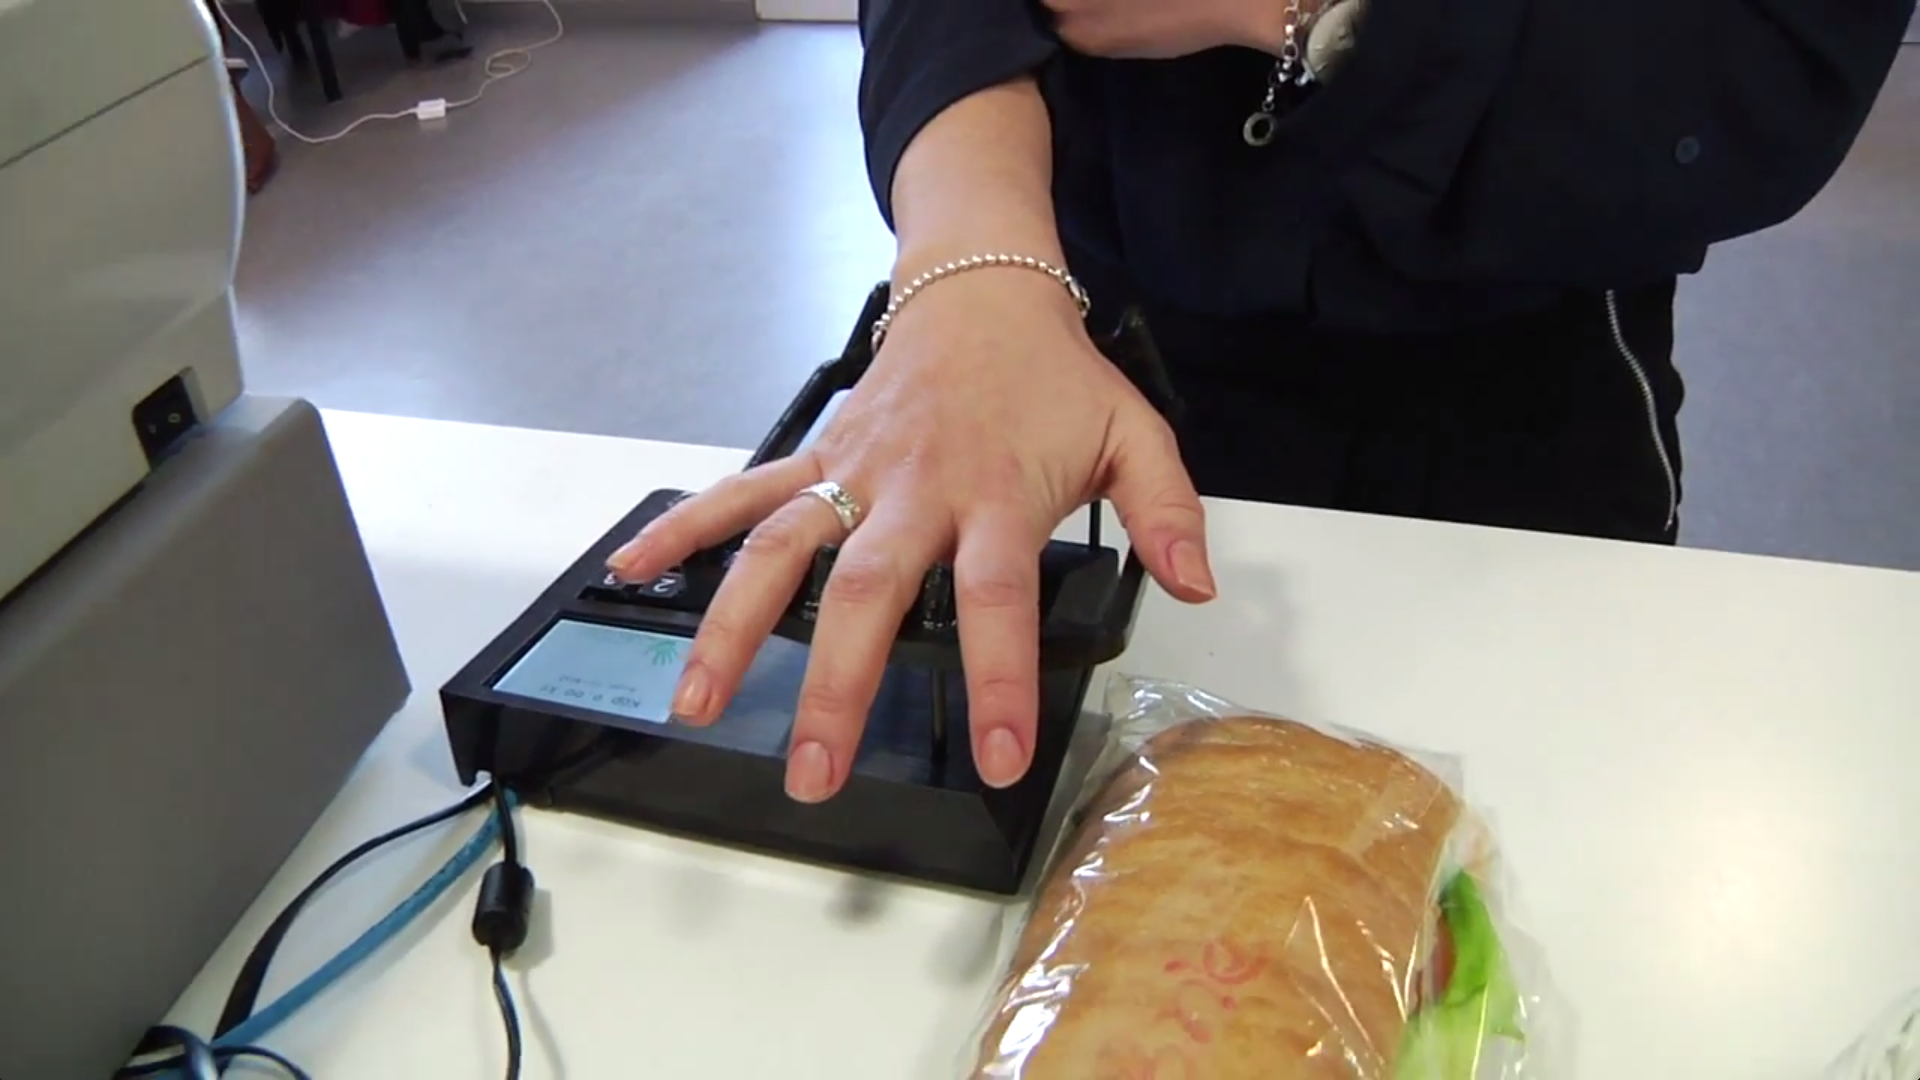 Pay with your hand using vein scanning